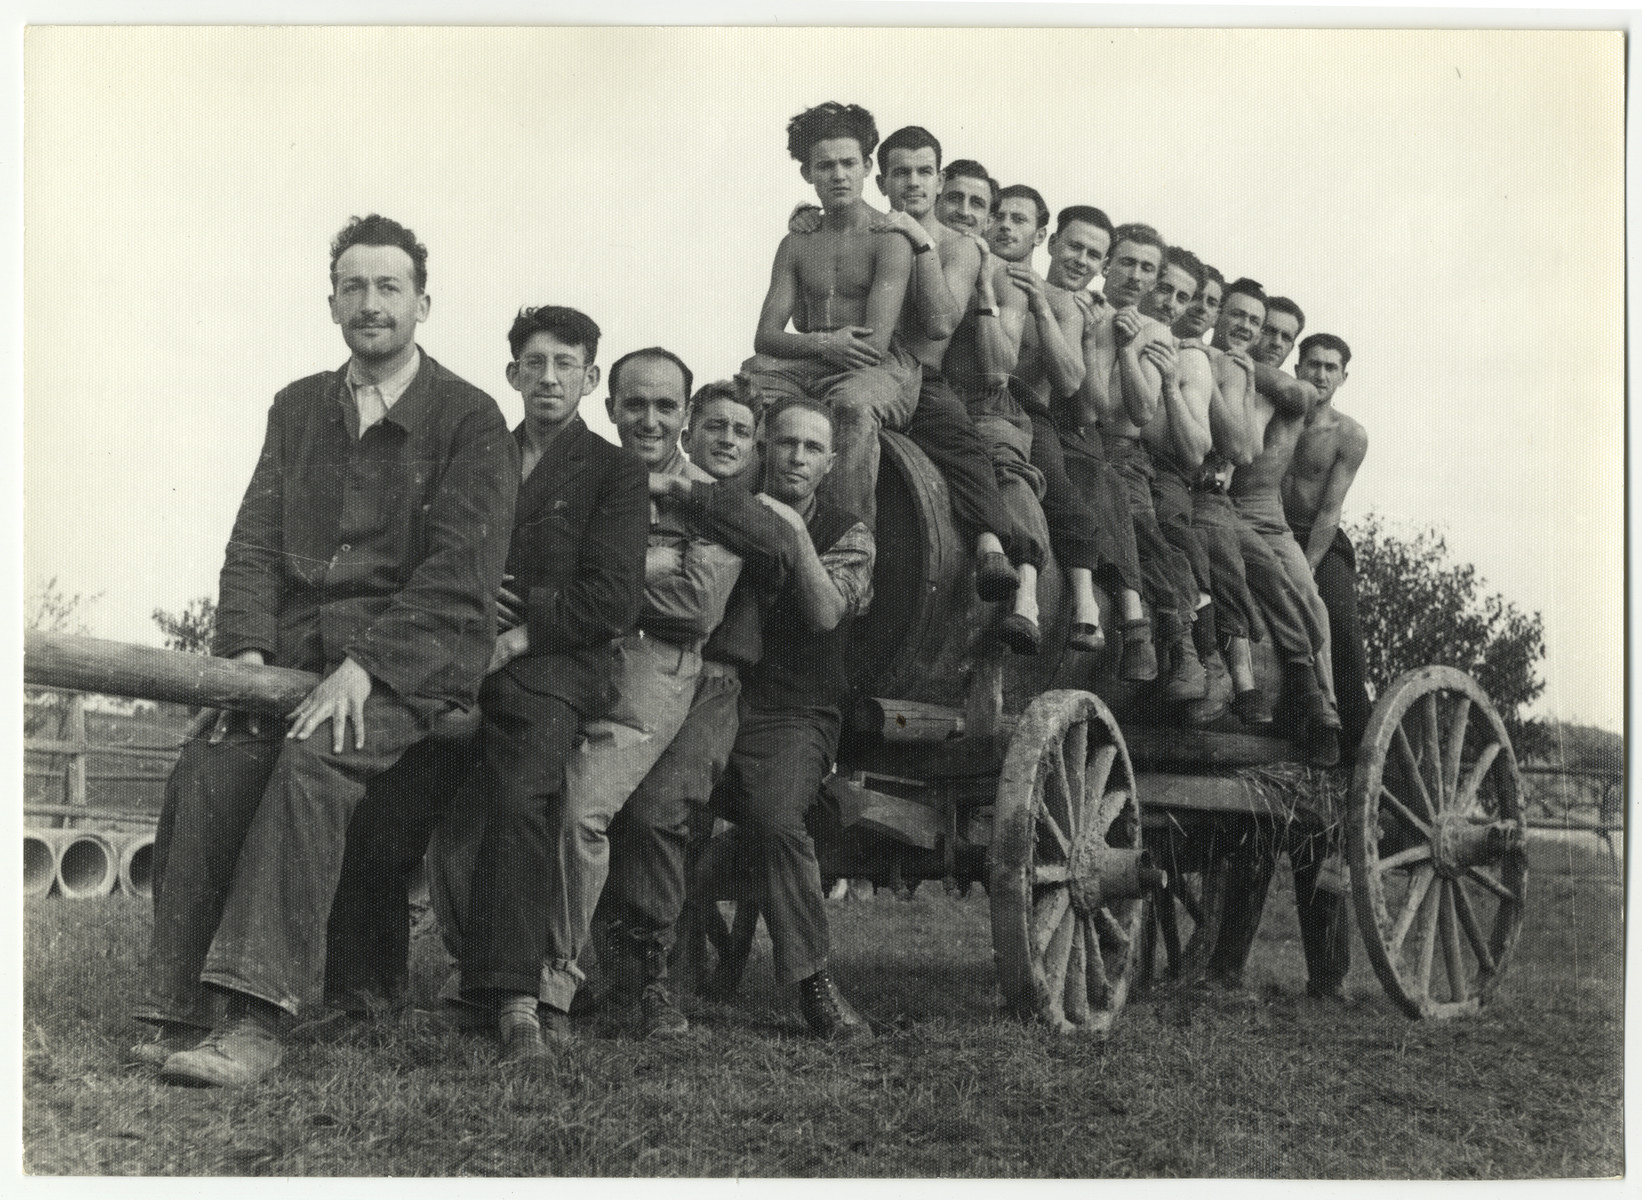 A group of Jewish workers pose atop a wagon in the Lipa farm labor camp.